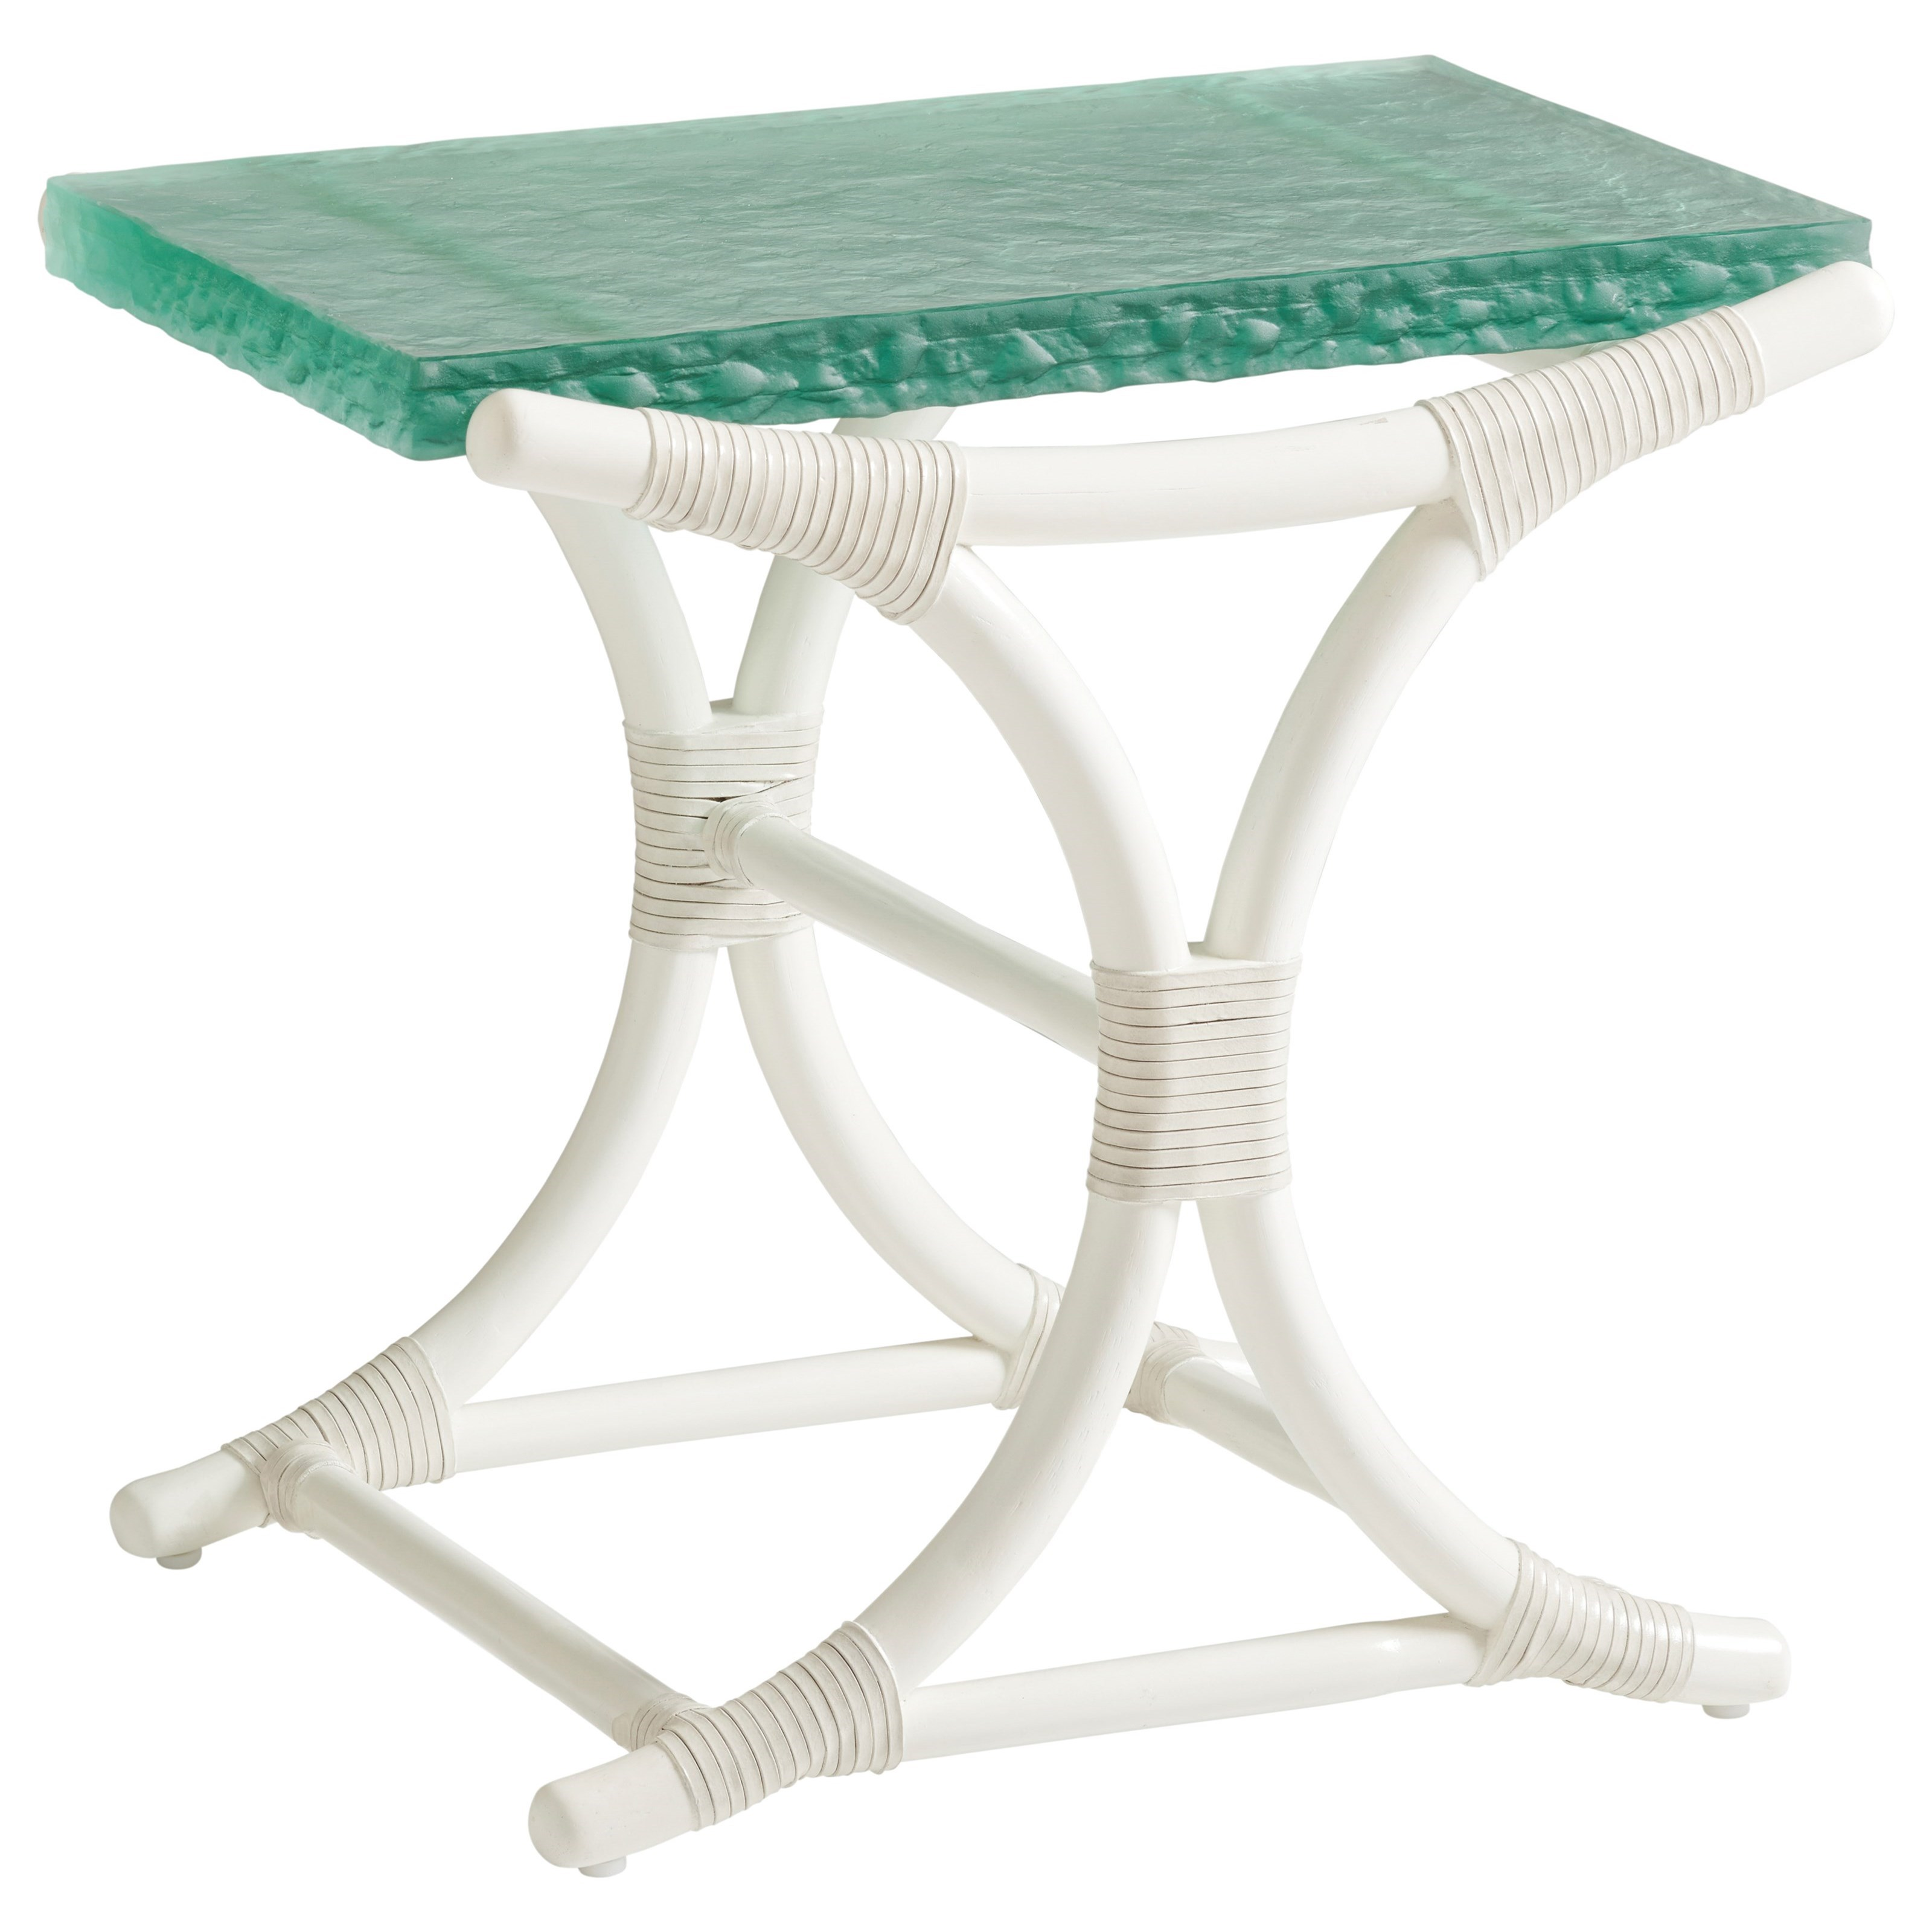 Ocean Breeze Dania Sea Glass End Table by Tommy Bahama Home at Baer's Furniture